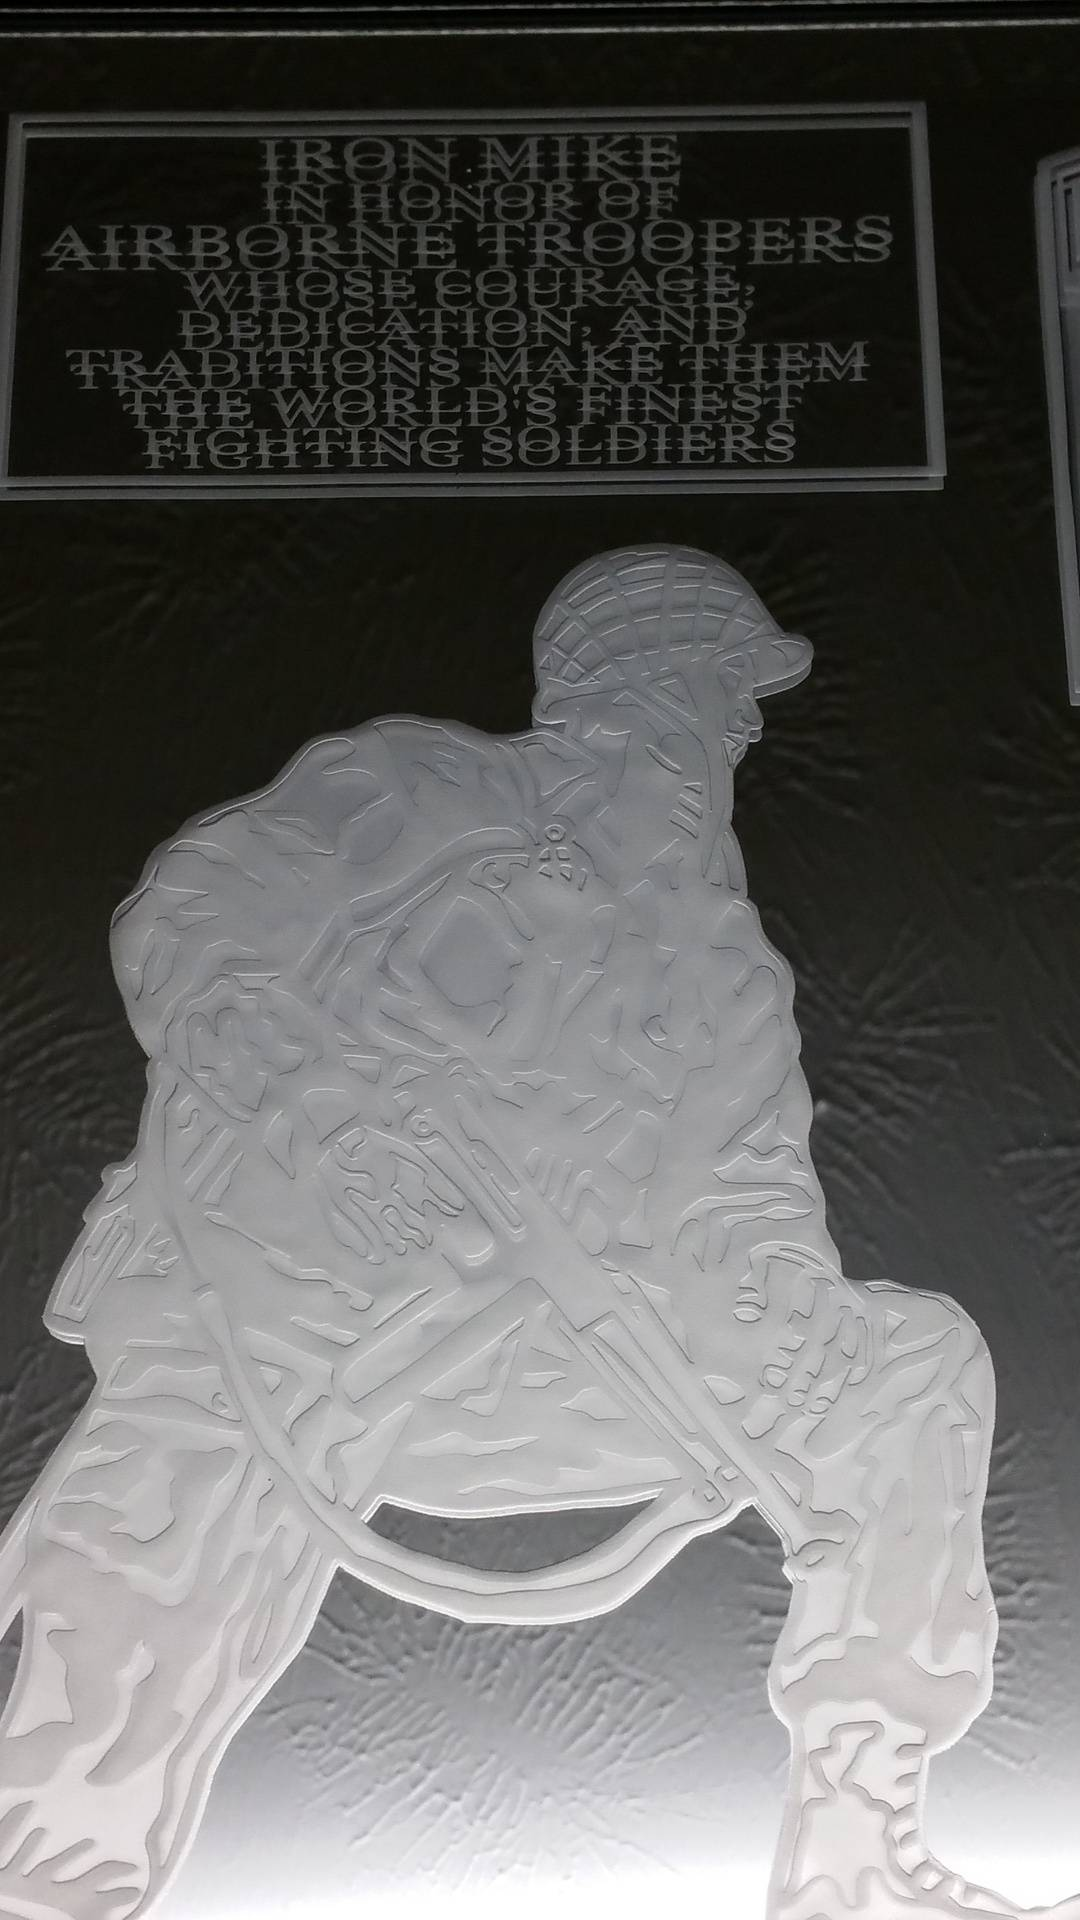 Close up of detail on Iron Mike